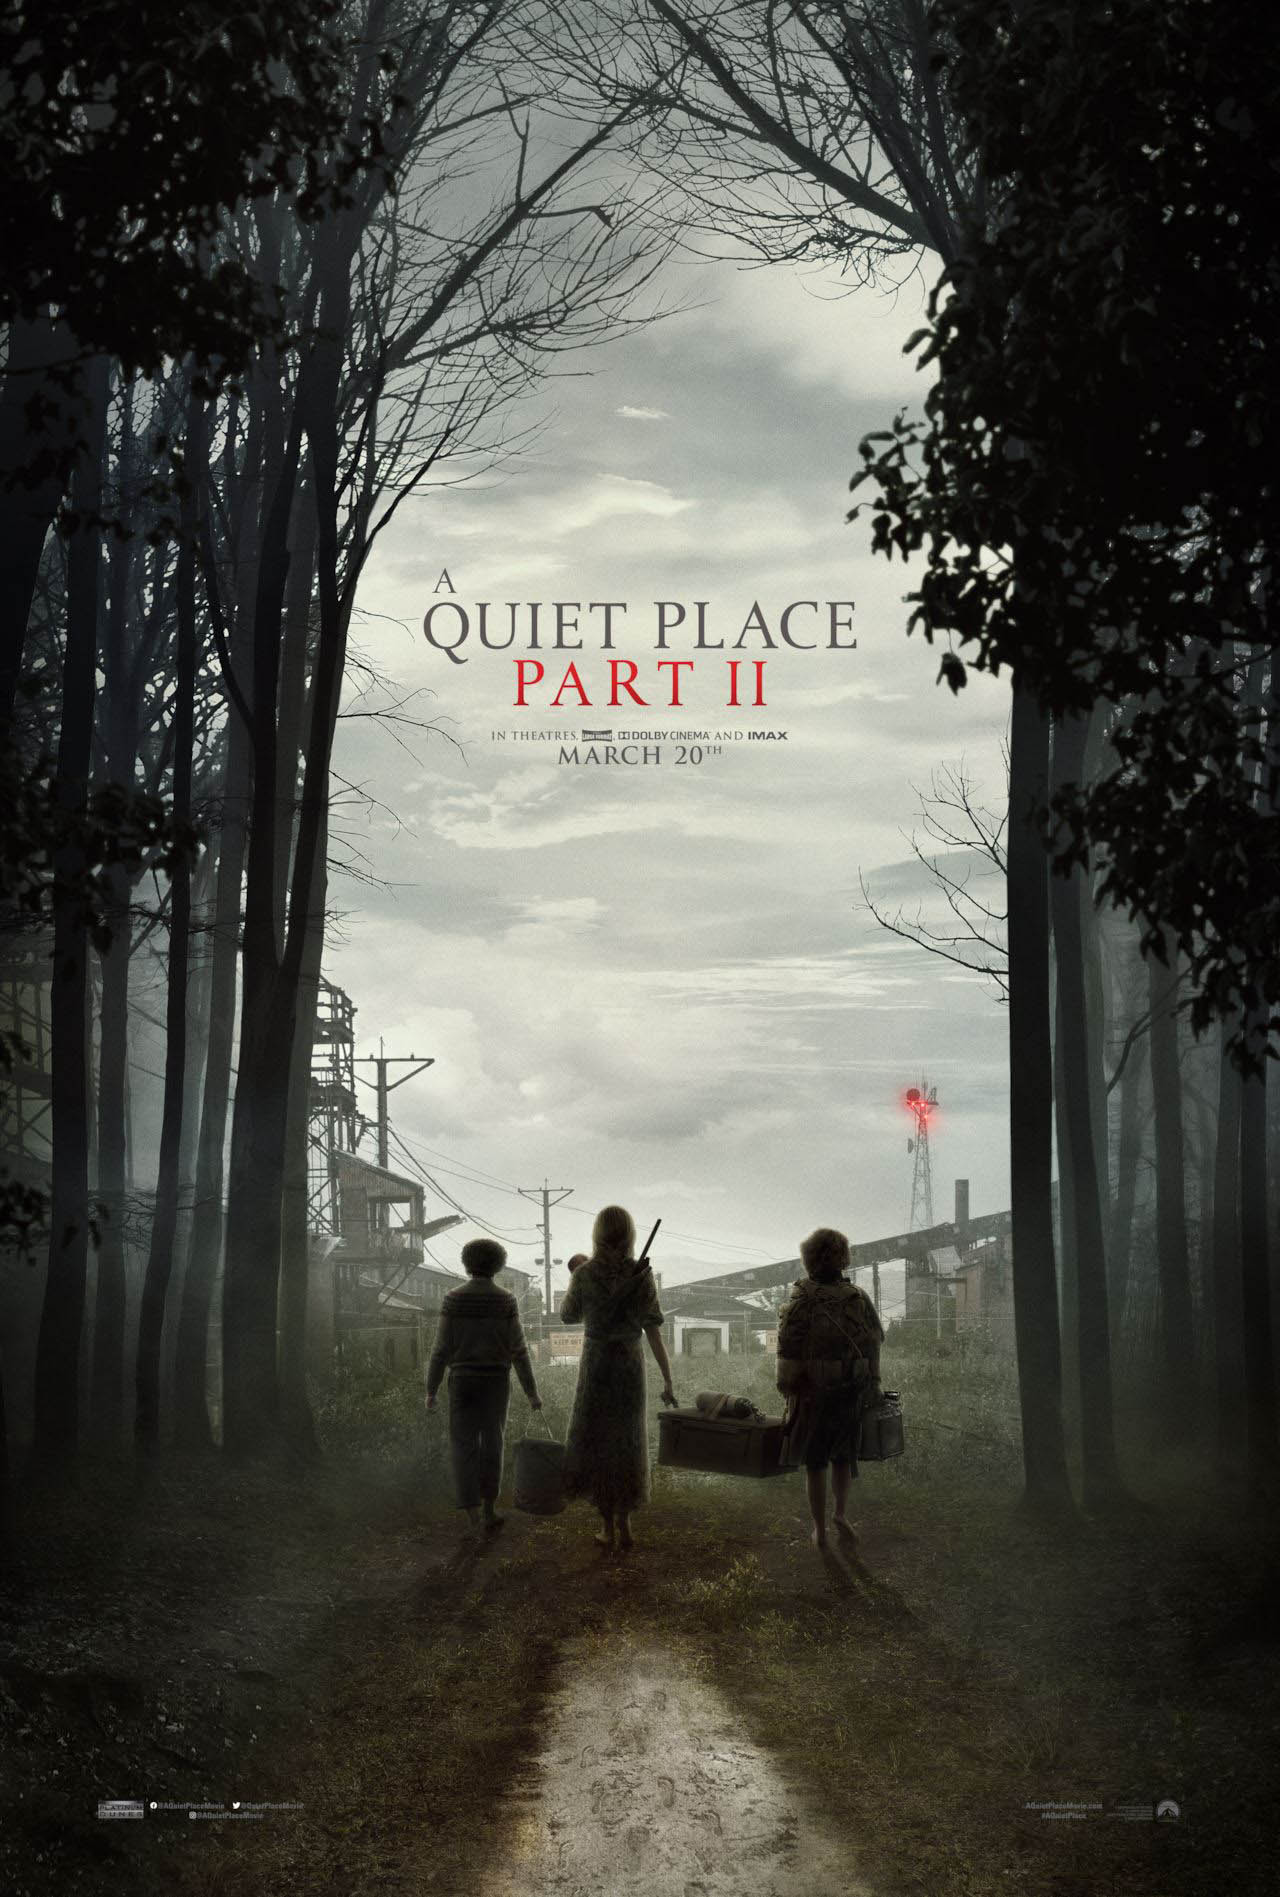 A Quiet Place: Part II (2020) Official Full Movie Free Online